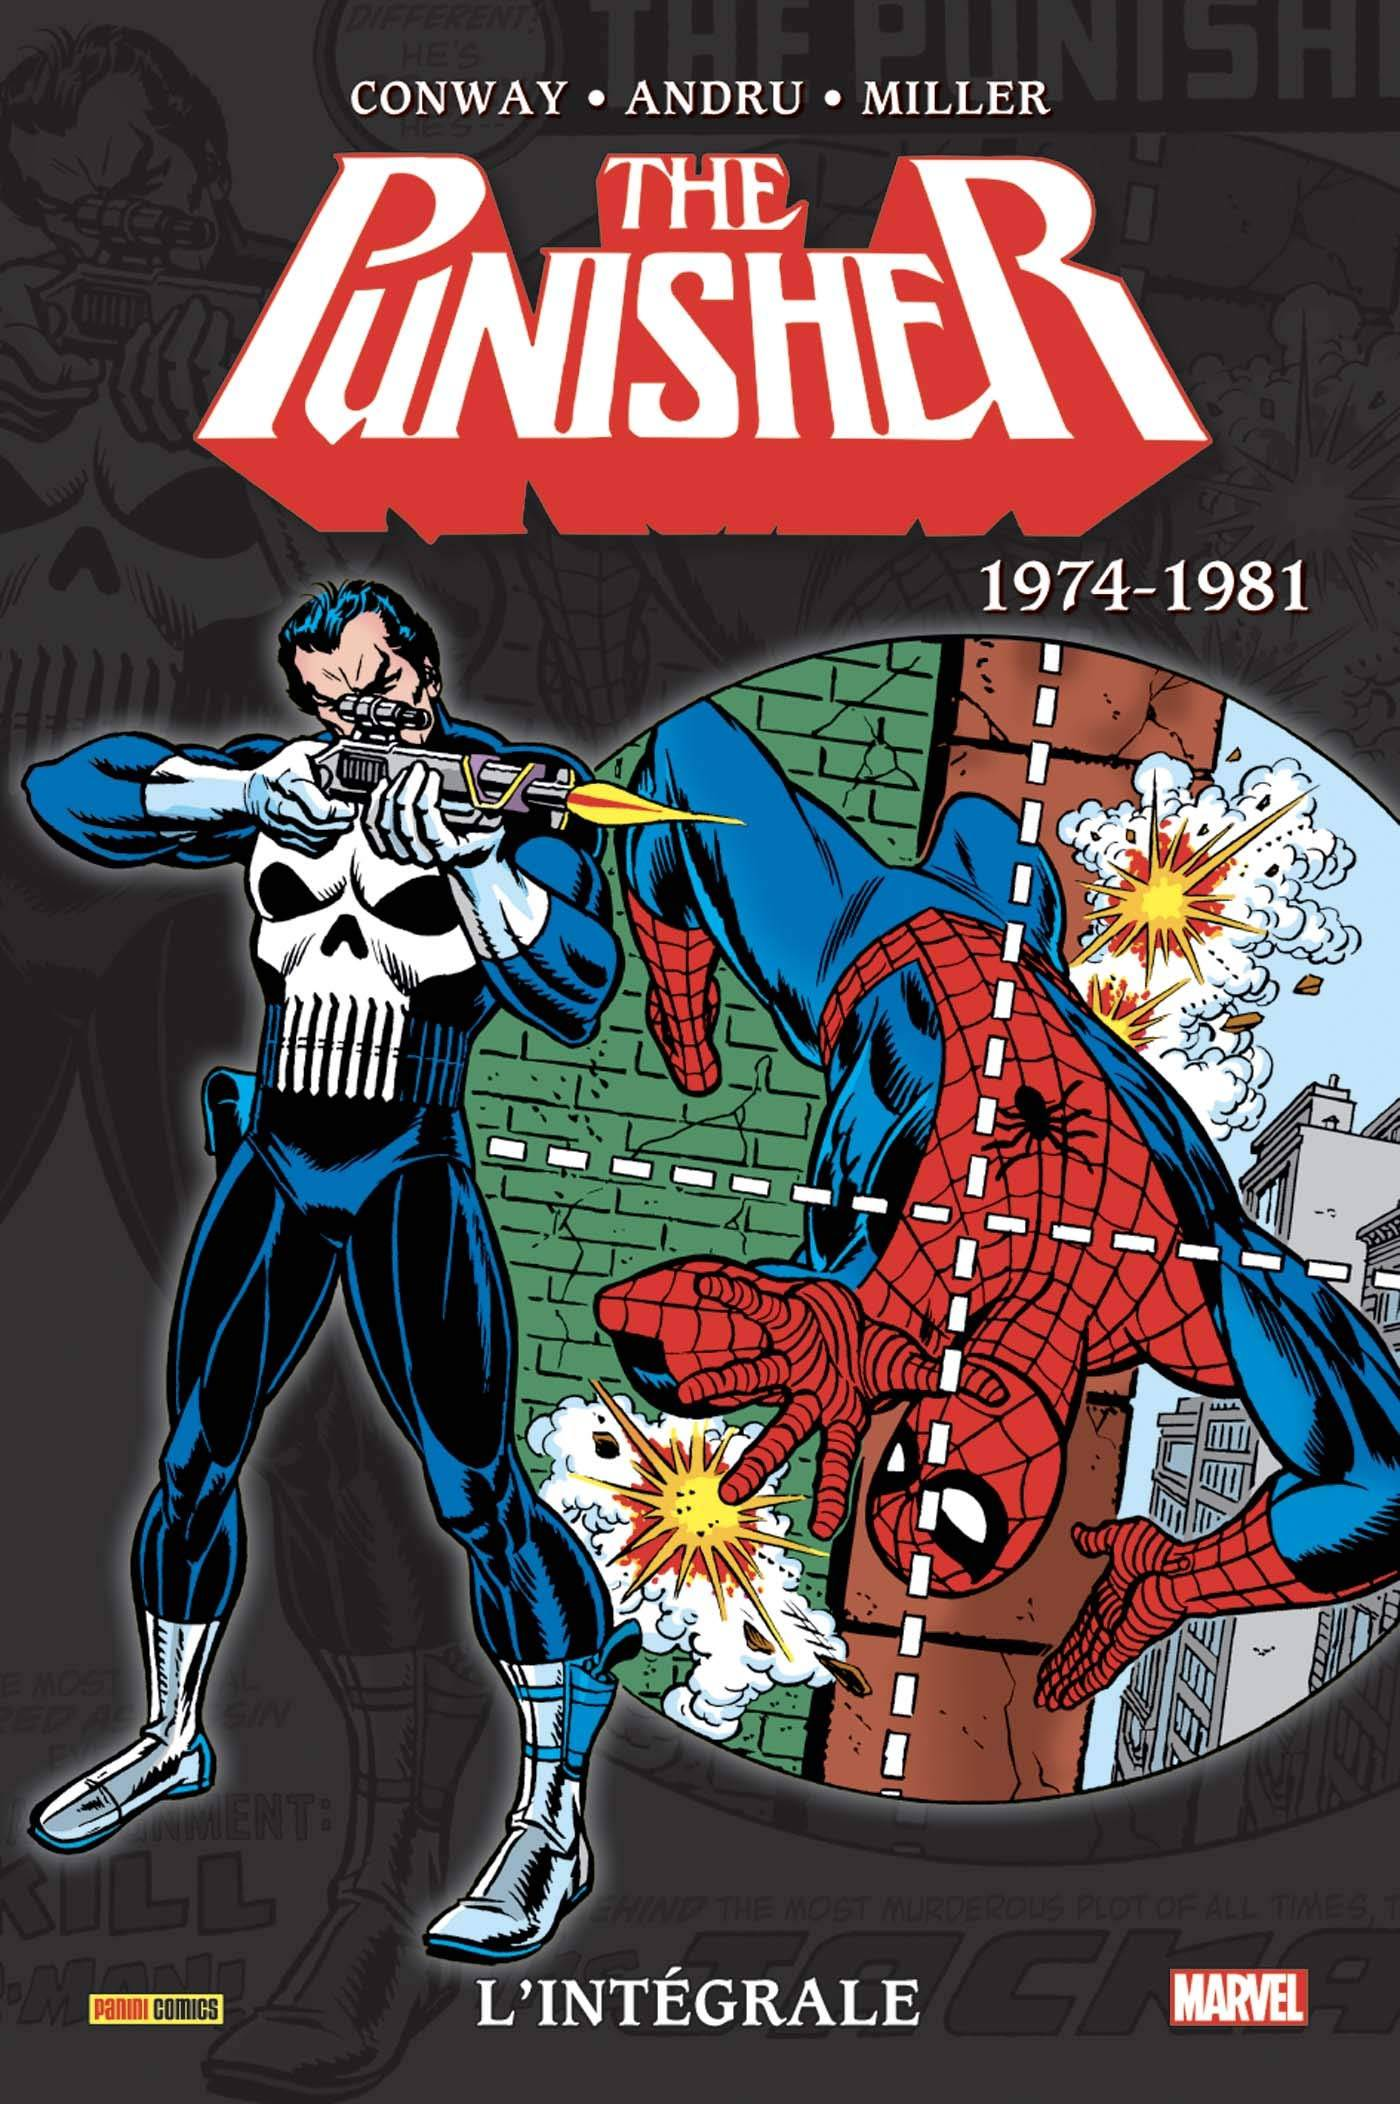 The Punisher intégrale 1974-1981